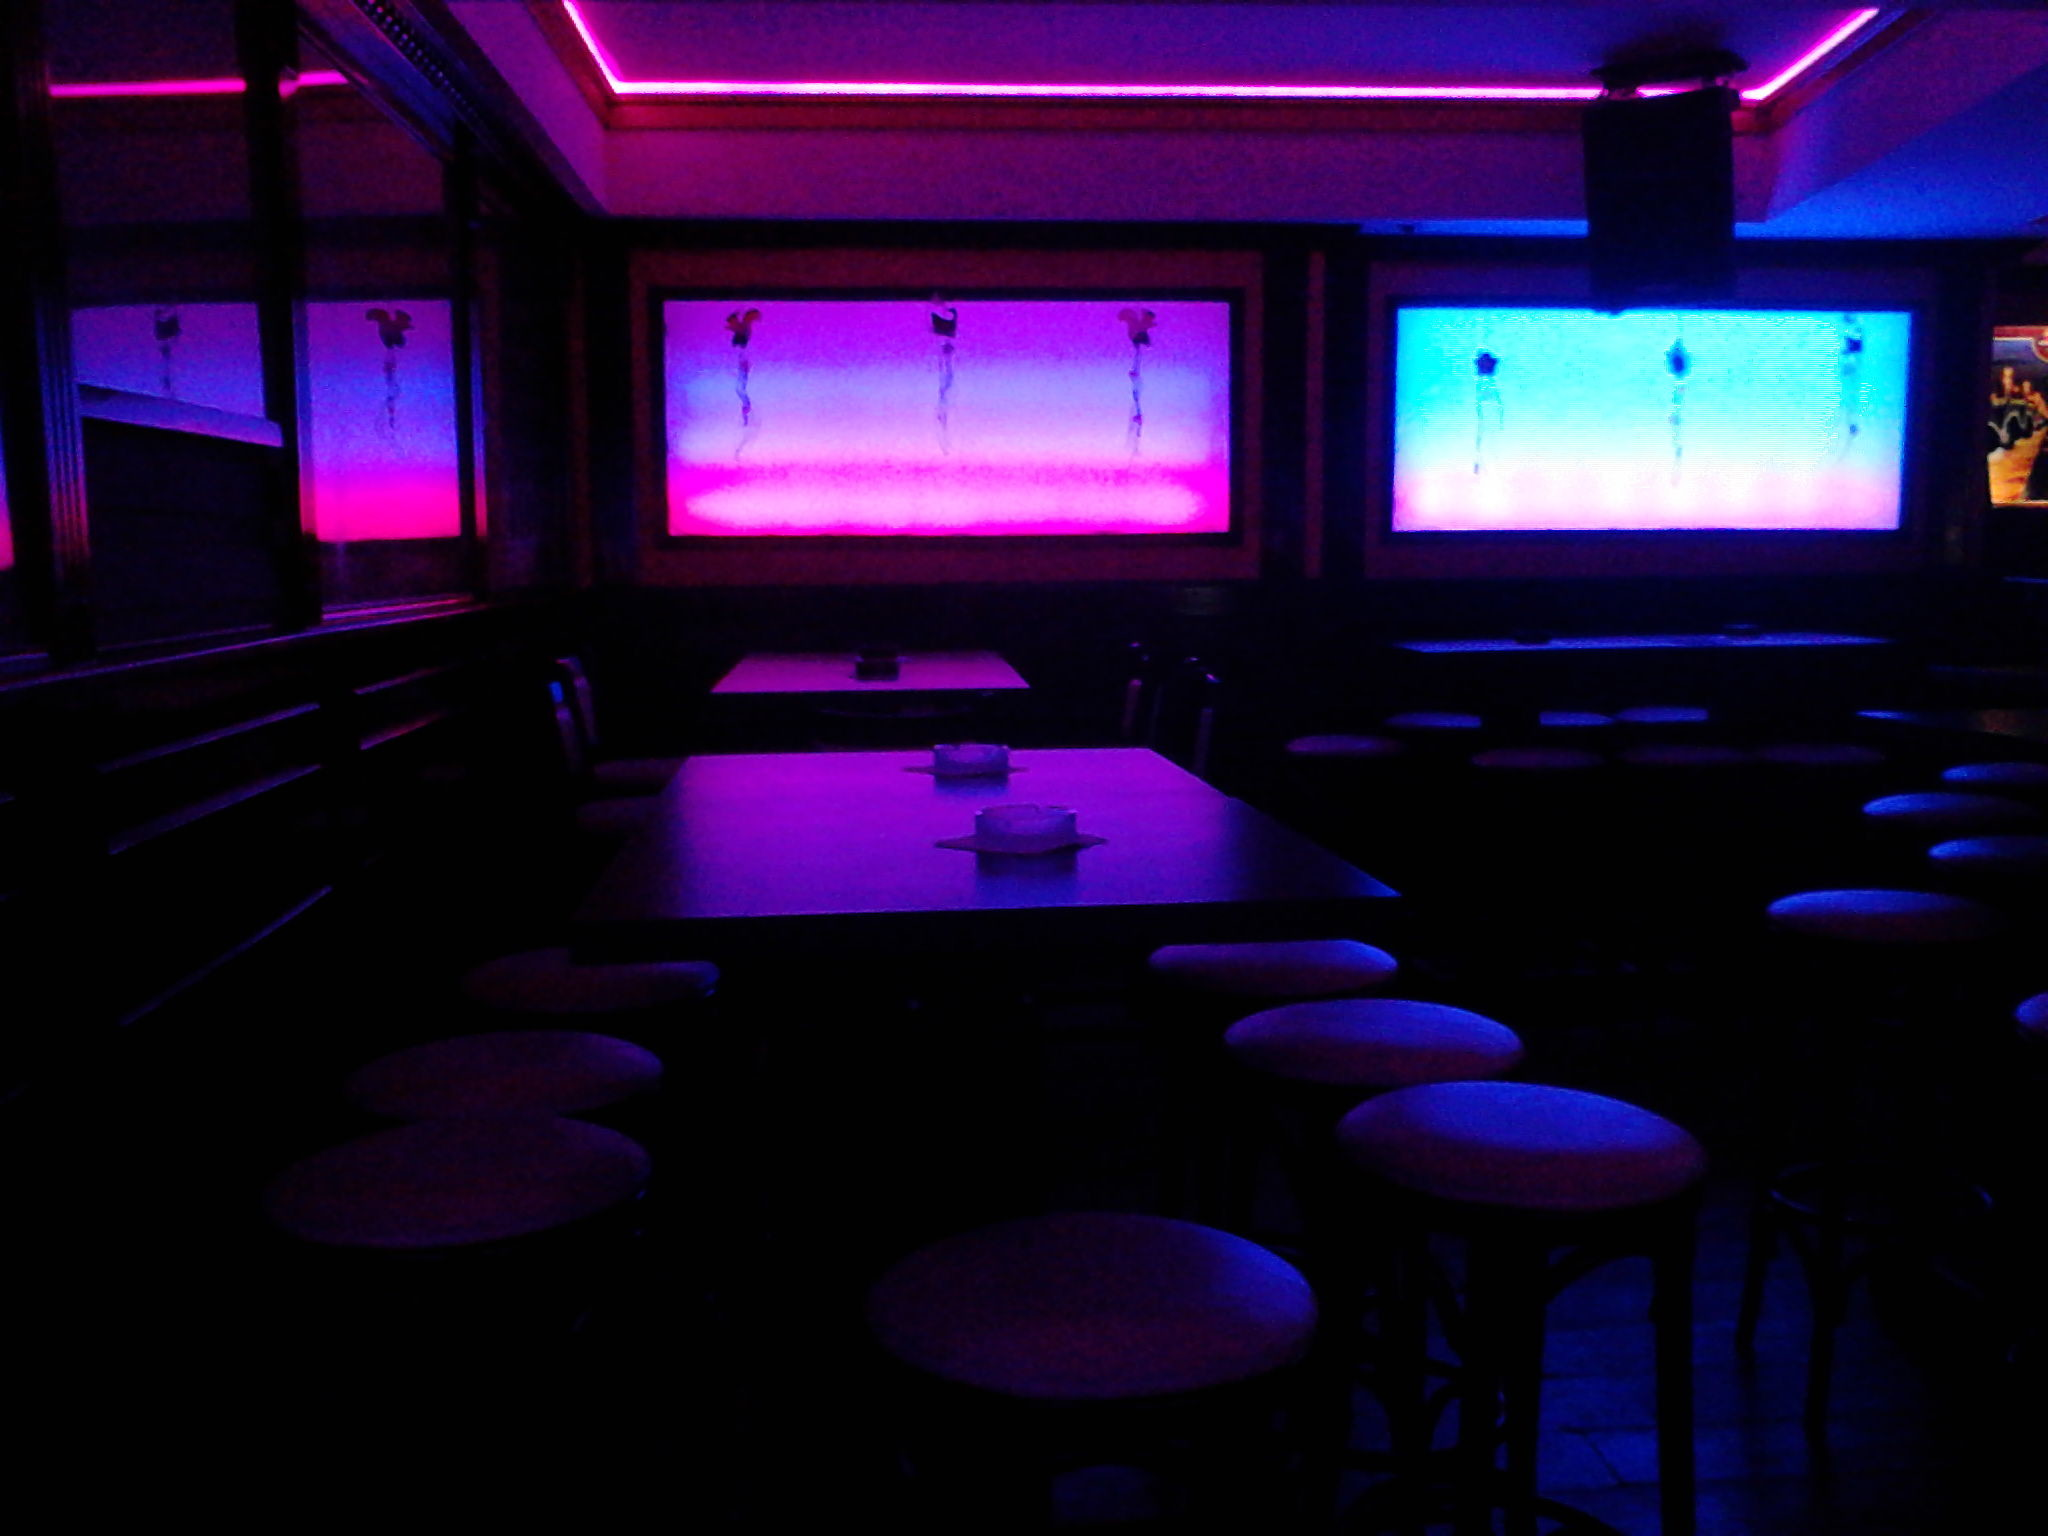 Night Club Wallpapers Hd Wallpaper Collections 4kwallpaper Wiki